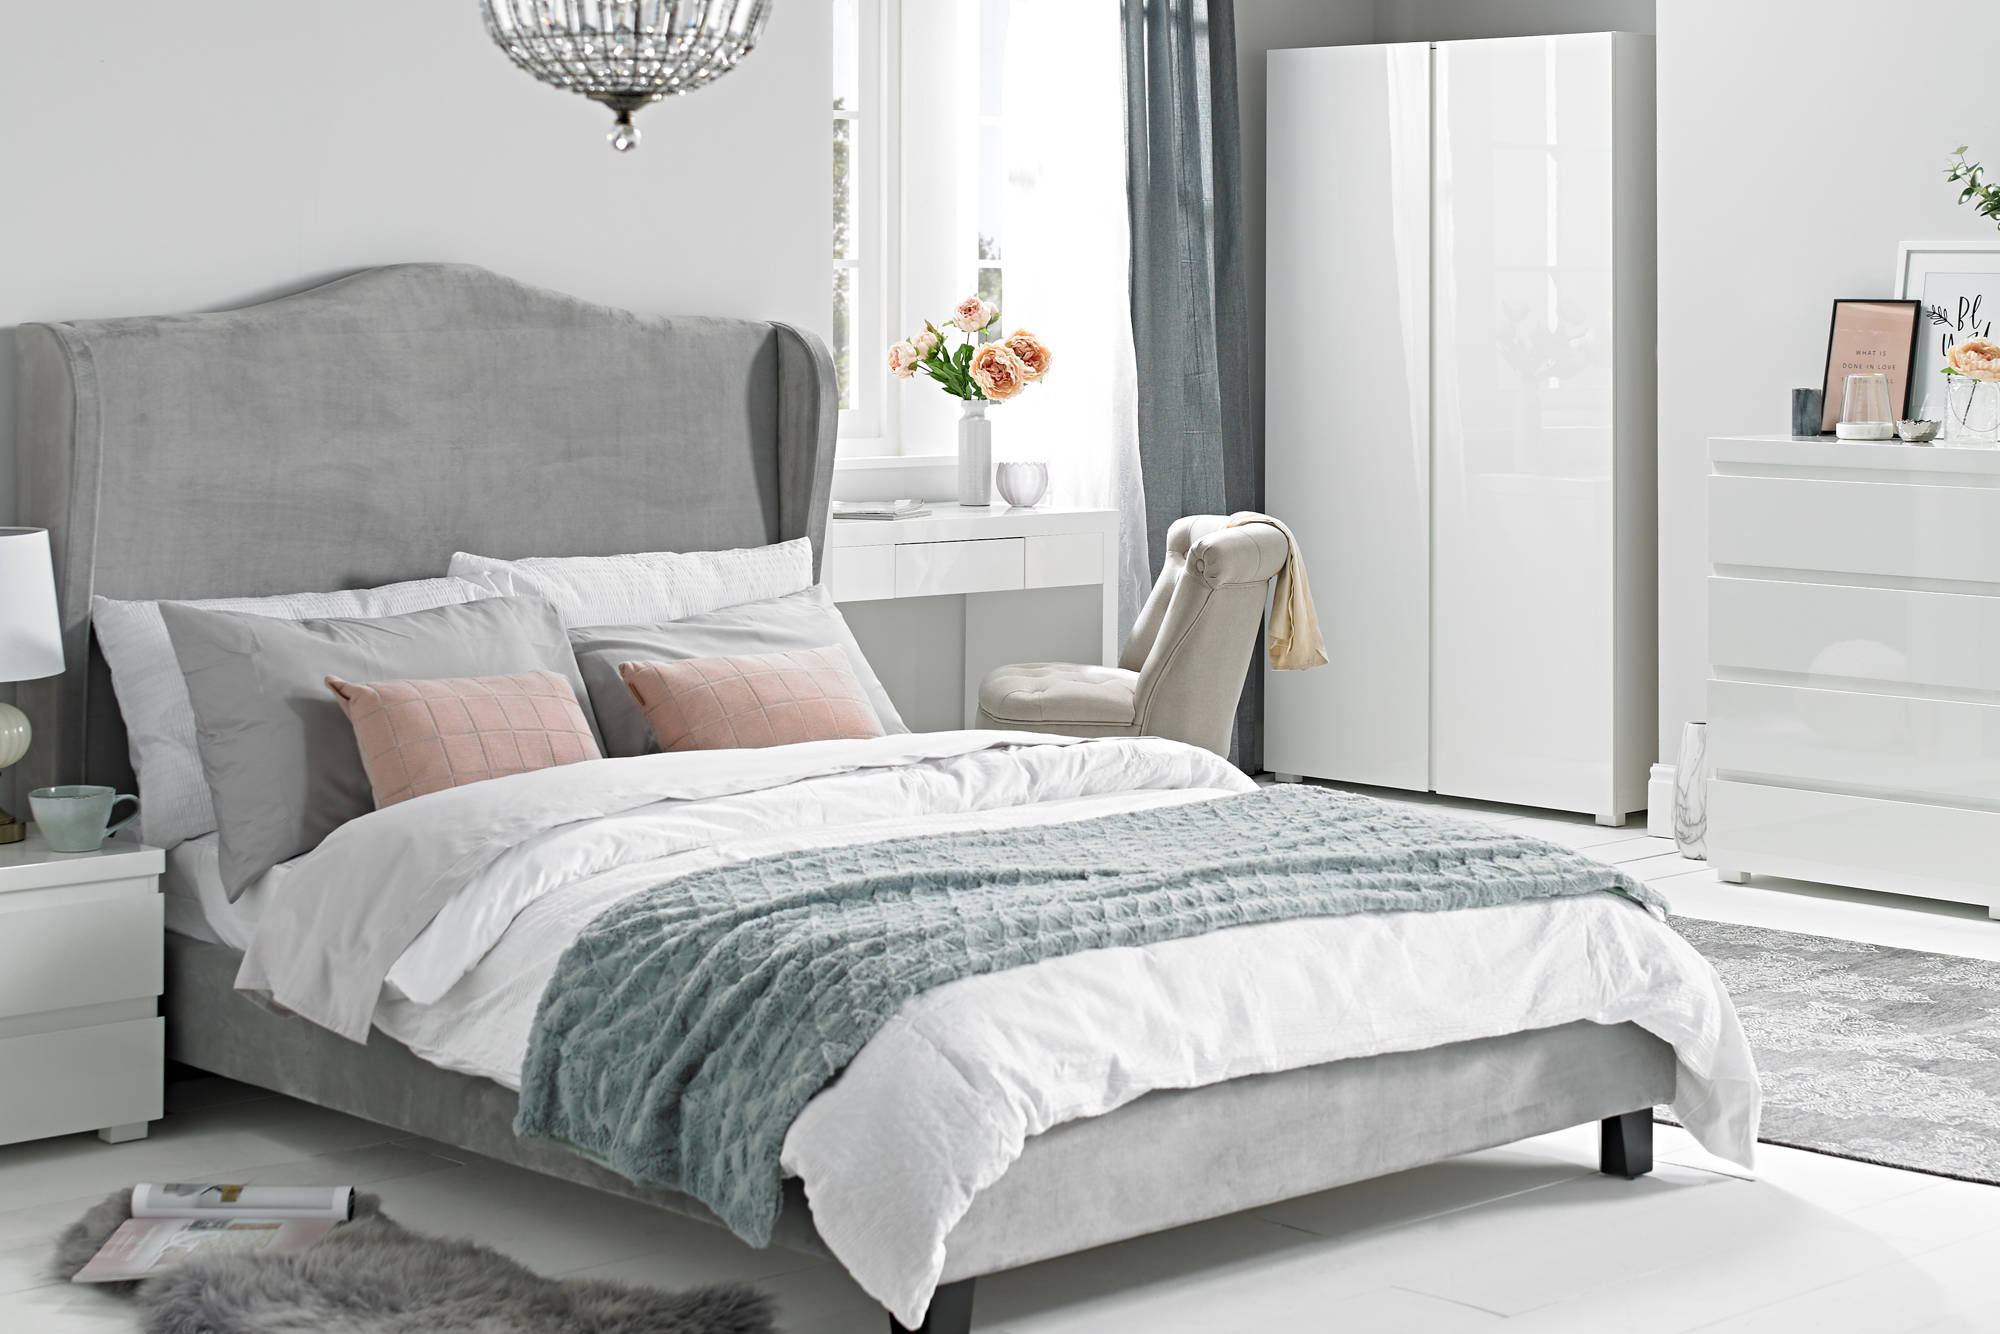 Cheverny Double Bed in Charcoal - Ezzo